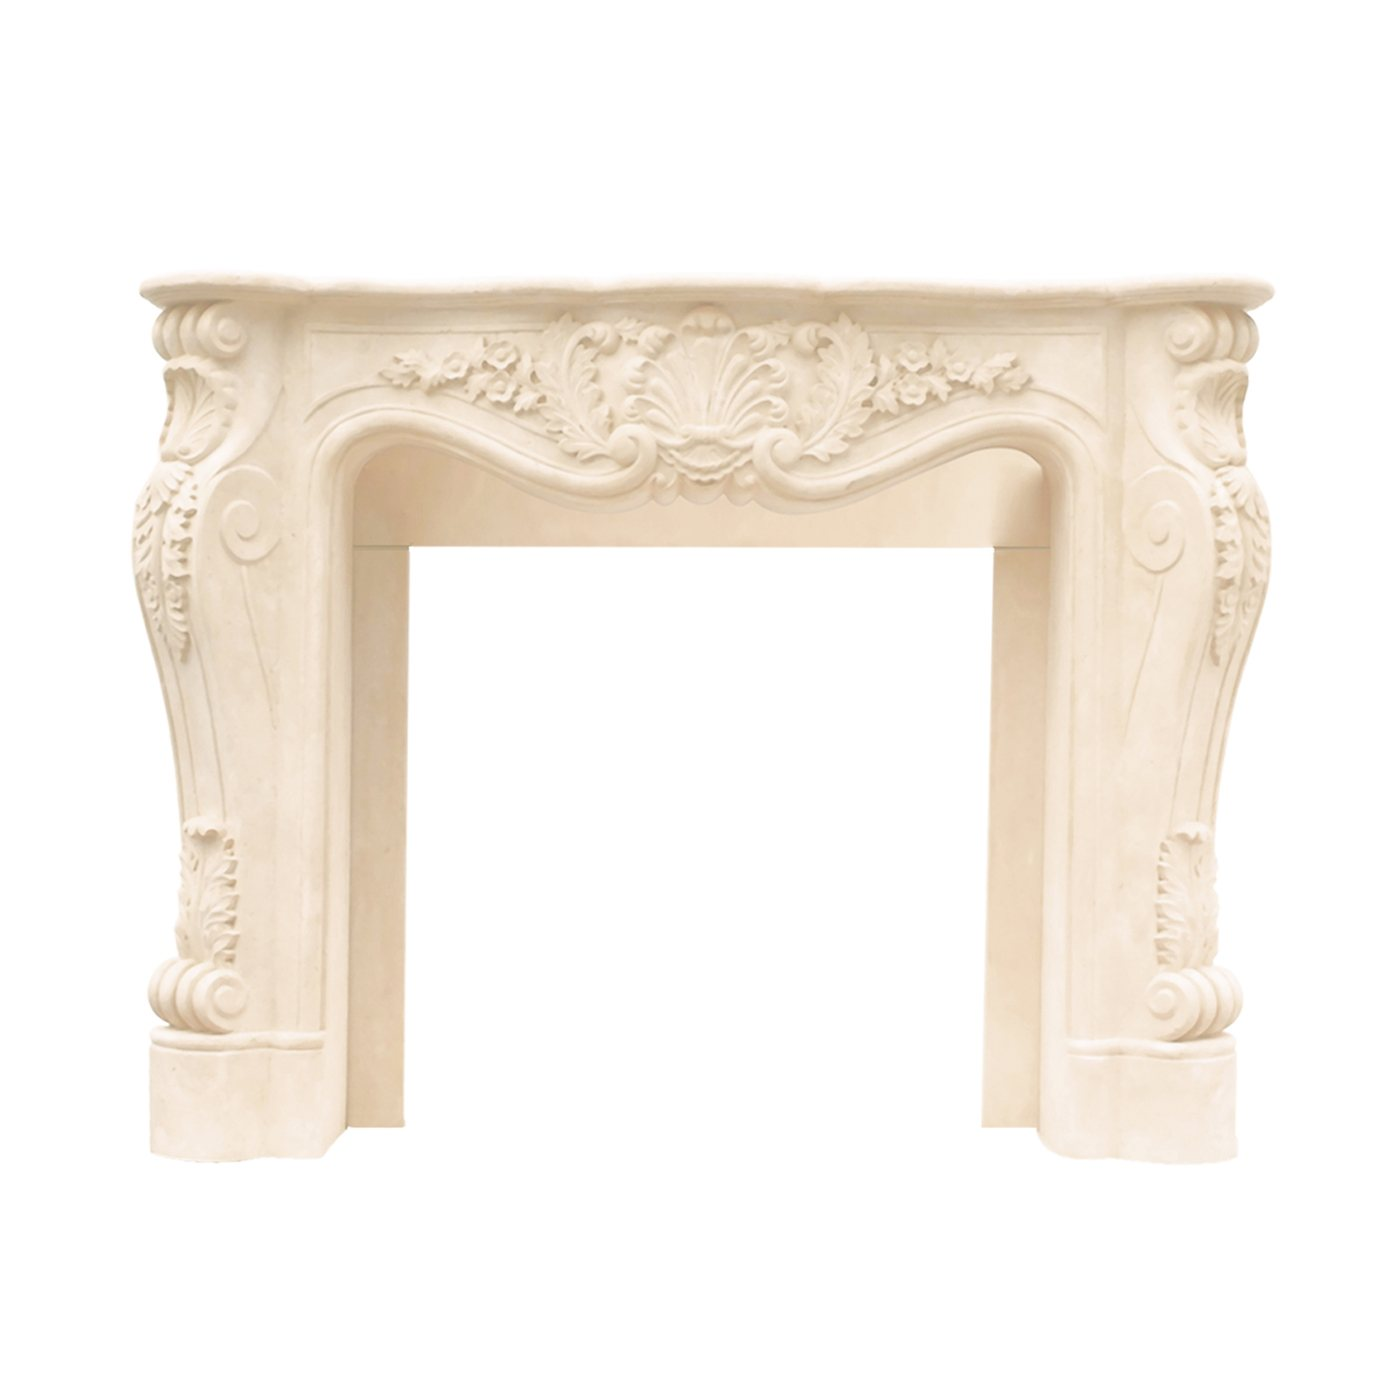 Pre Built Fireplace Surrounds | Lowes Fireplace Mantel | Fireplace Mantel Kits Home Depot